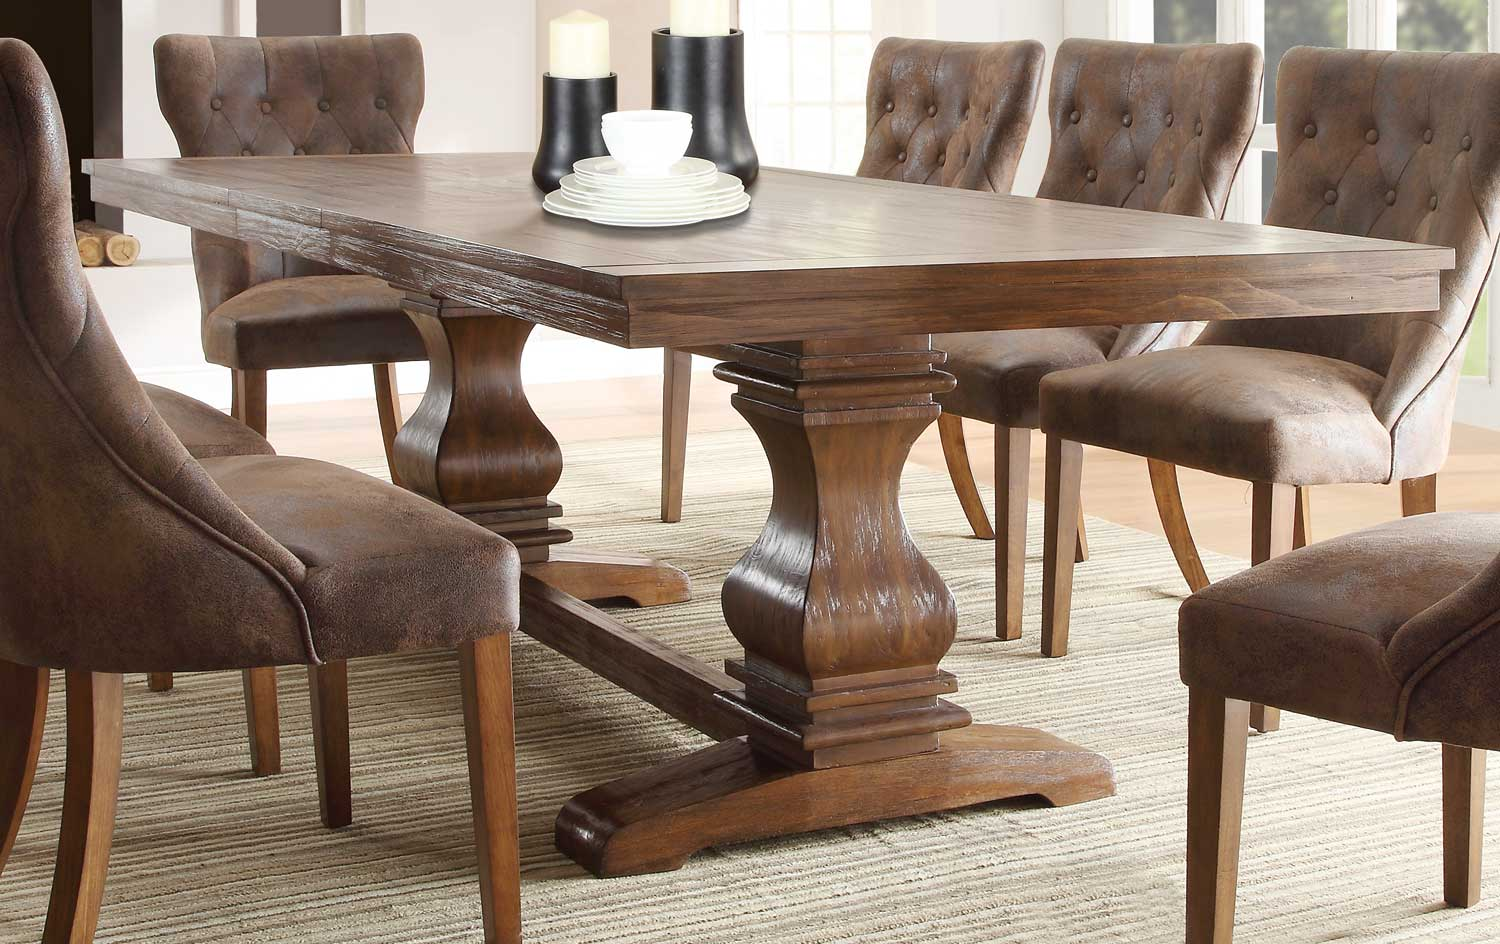 Homelegance Marie Louise Dining Set Rustic Oak Brown D2526 96 at Homelement